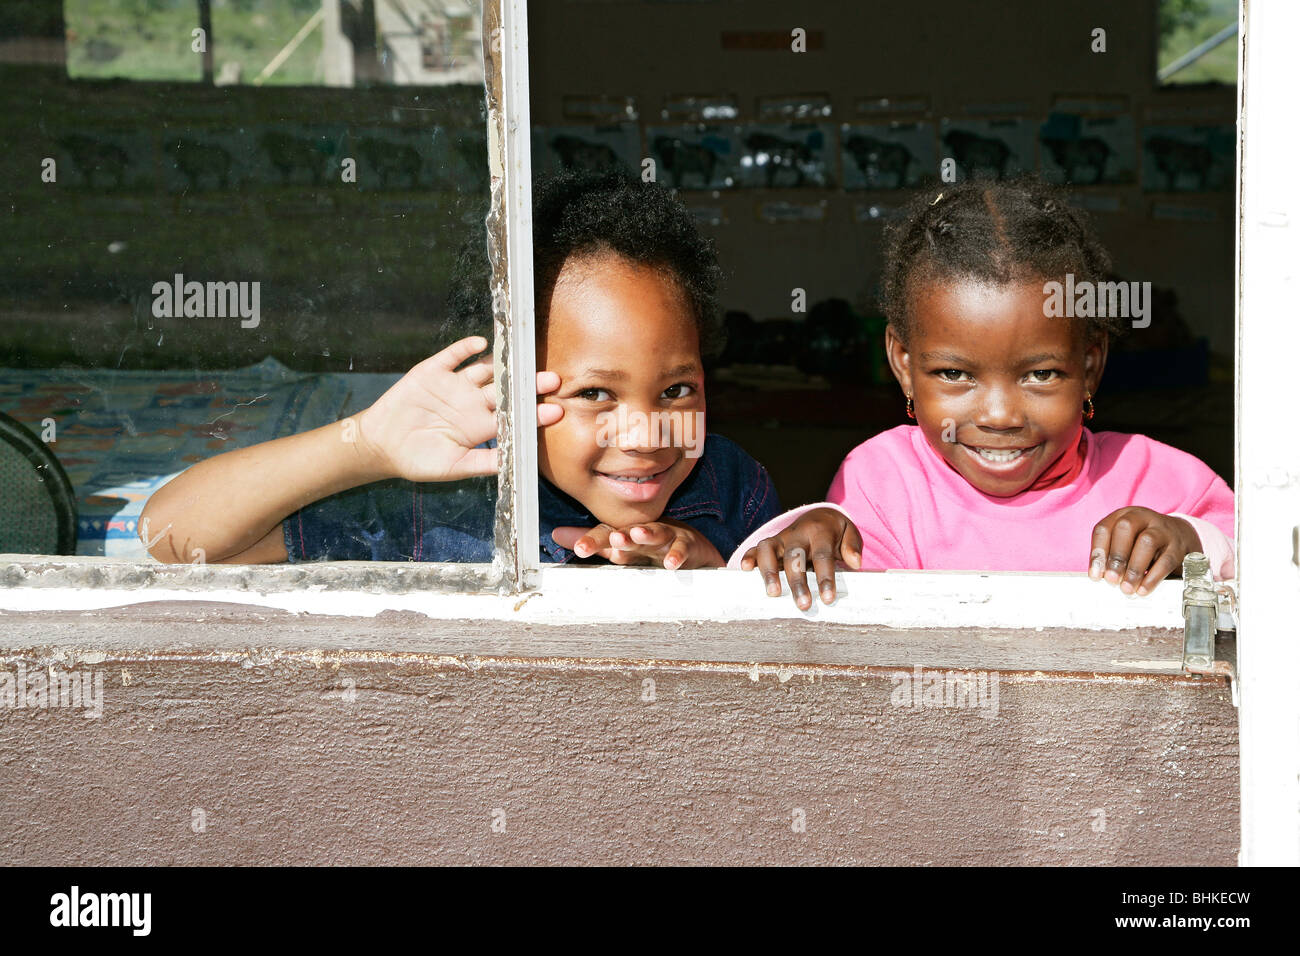 Black South African School Children Looking Out Of A School Window Stock Photo Alamy